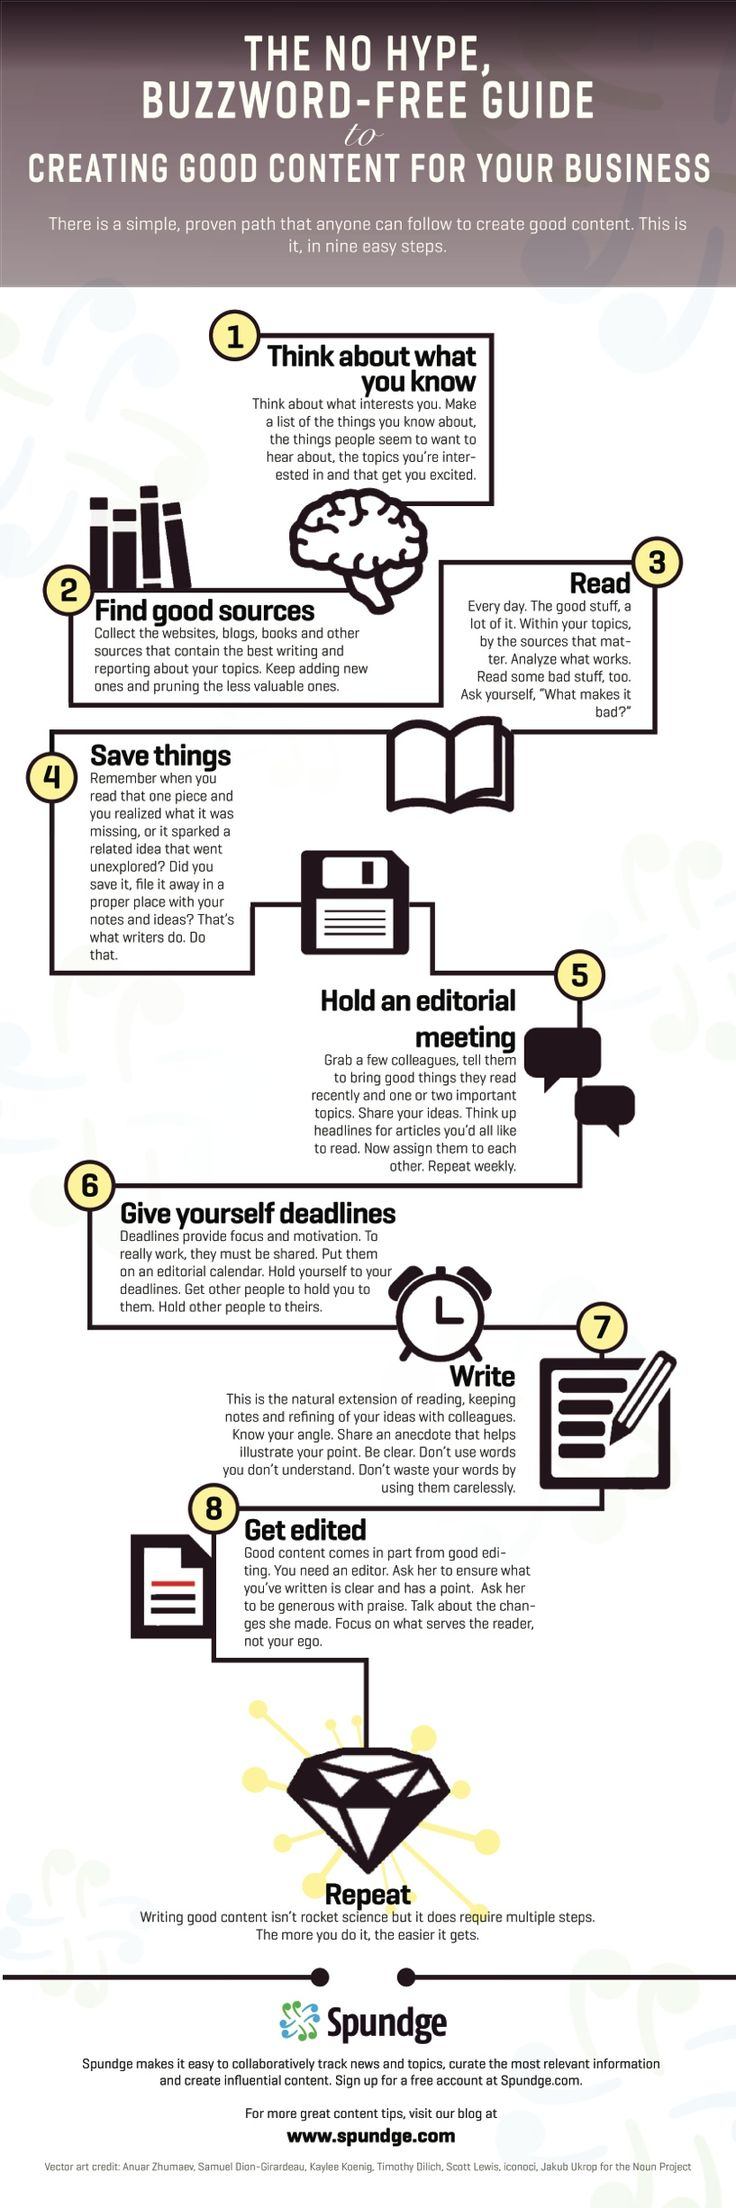 Creating good content is not an easy task. I could be, however, mastered. Here are 8 tips how to approach to writing good content. #tips #2013